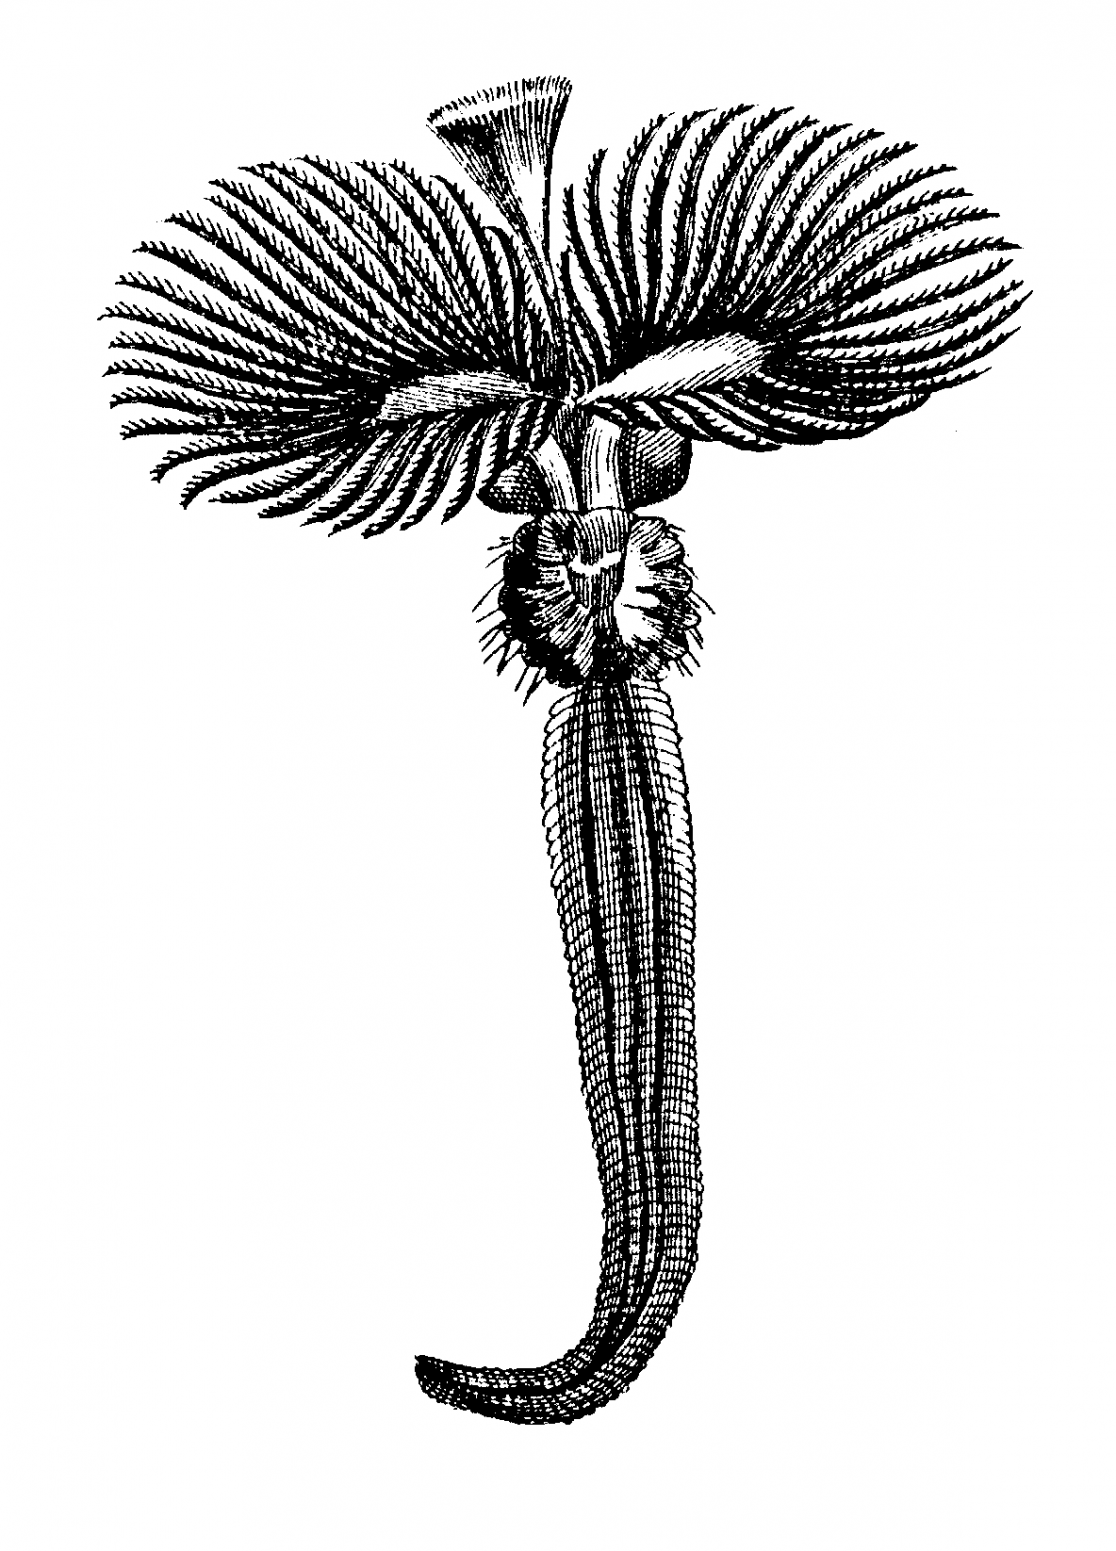 Stubeworm drawing